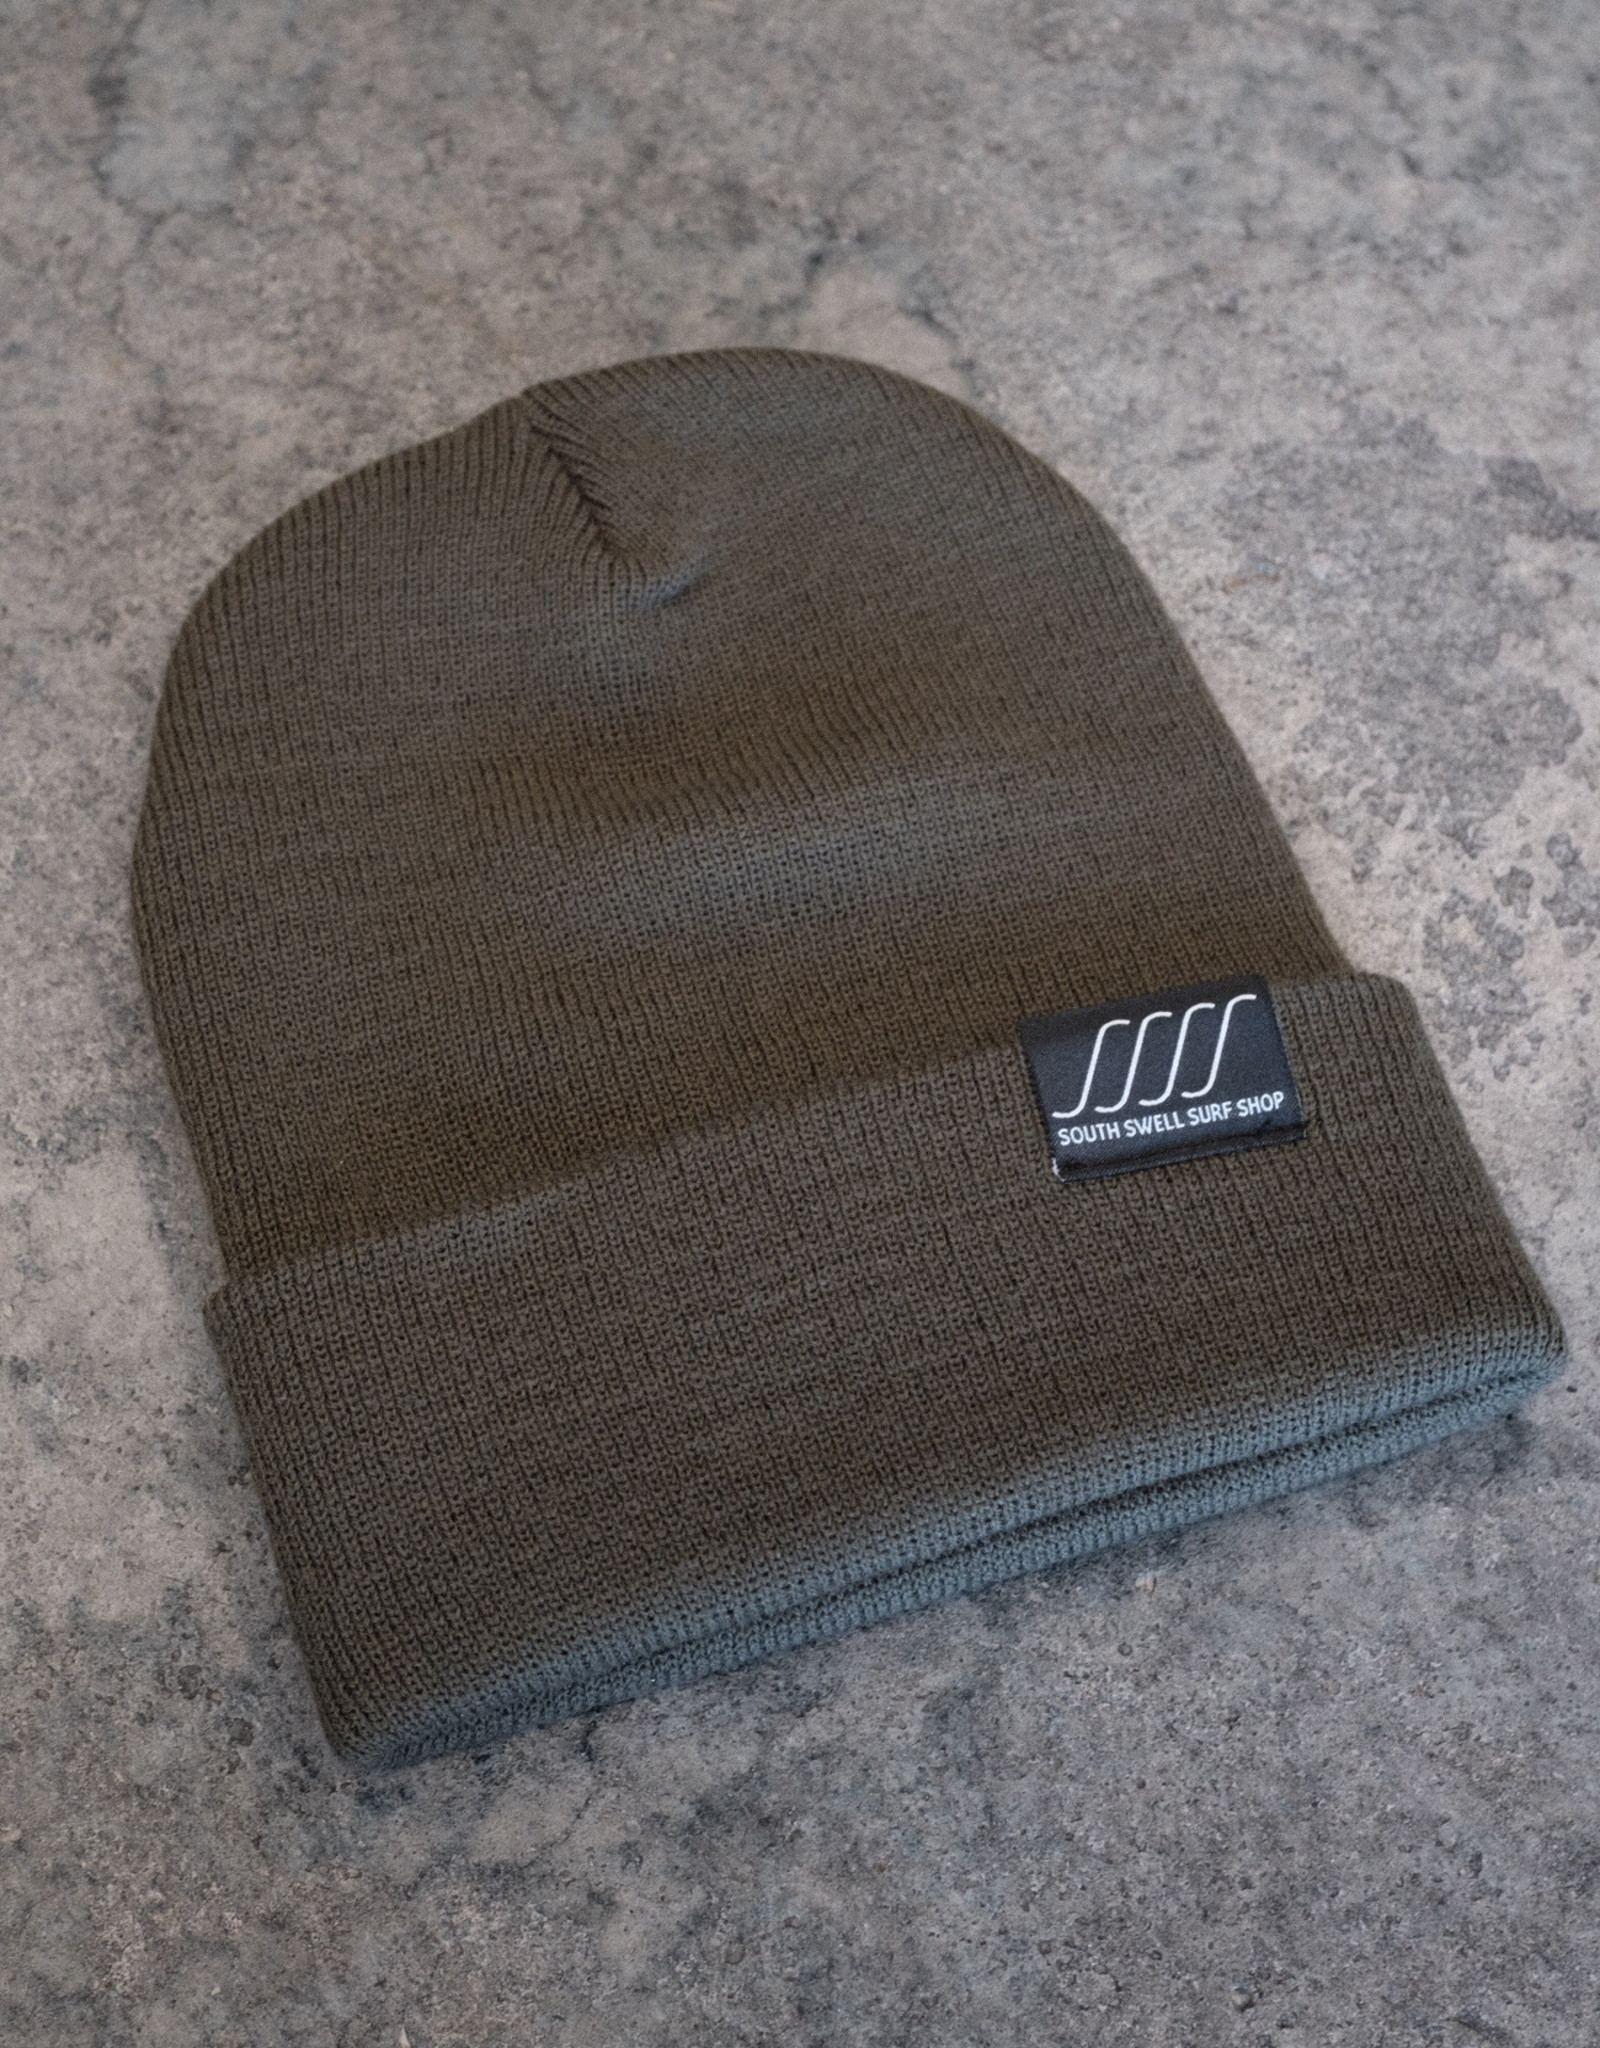 South Swell Surf Shop SSSS Beanie